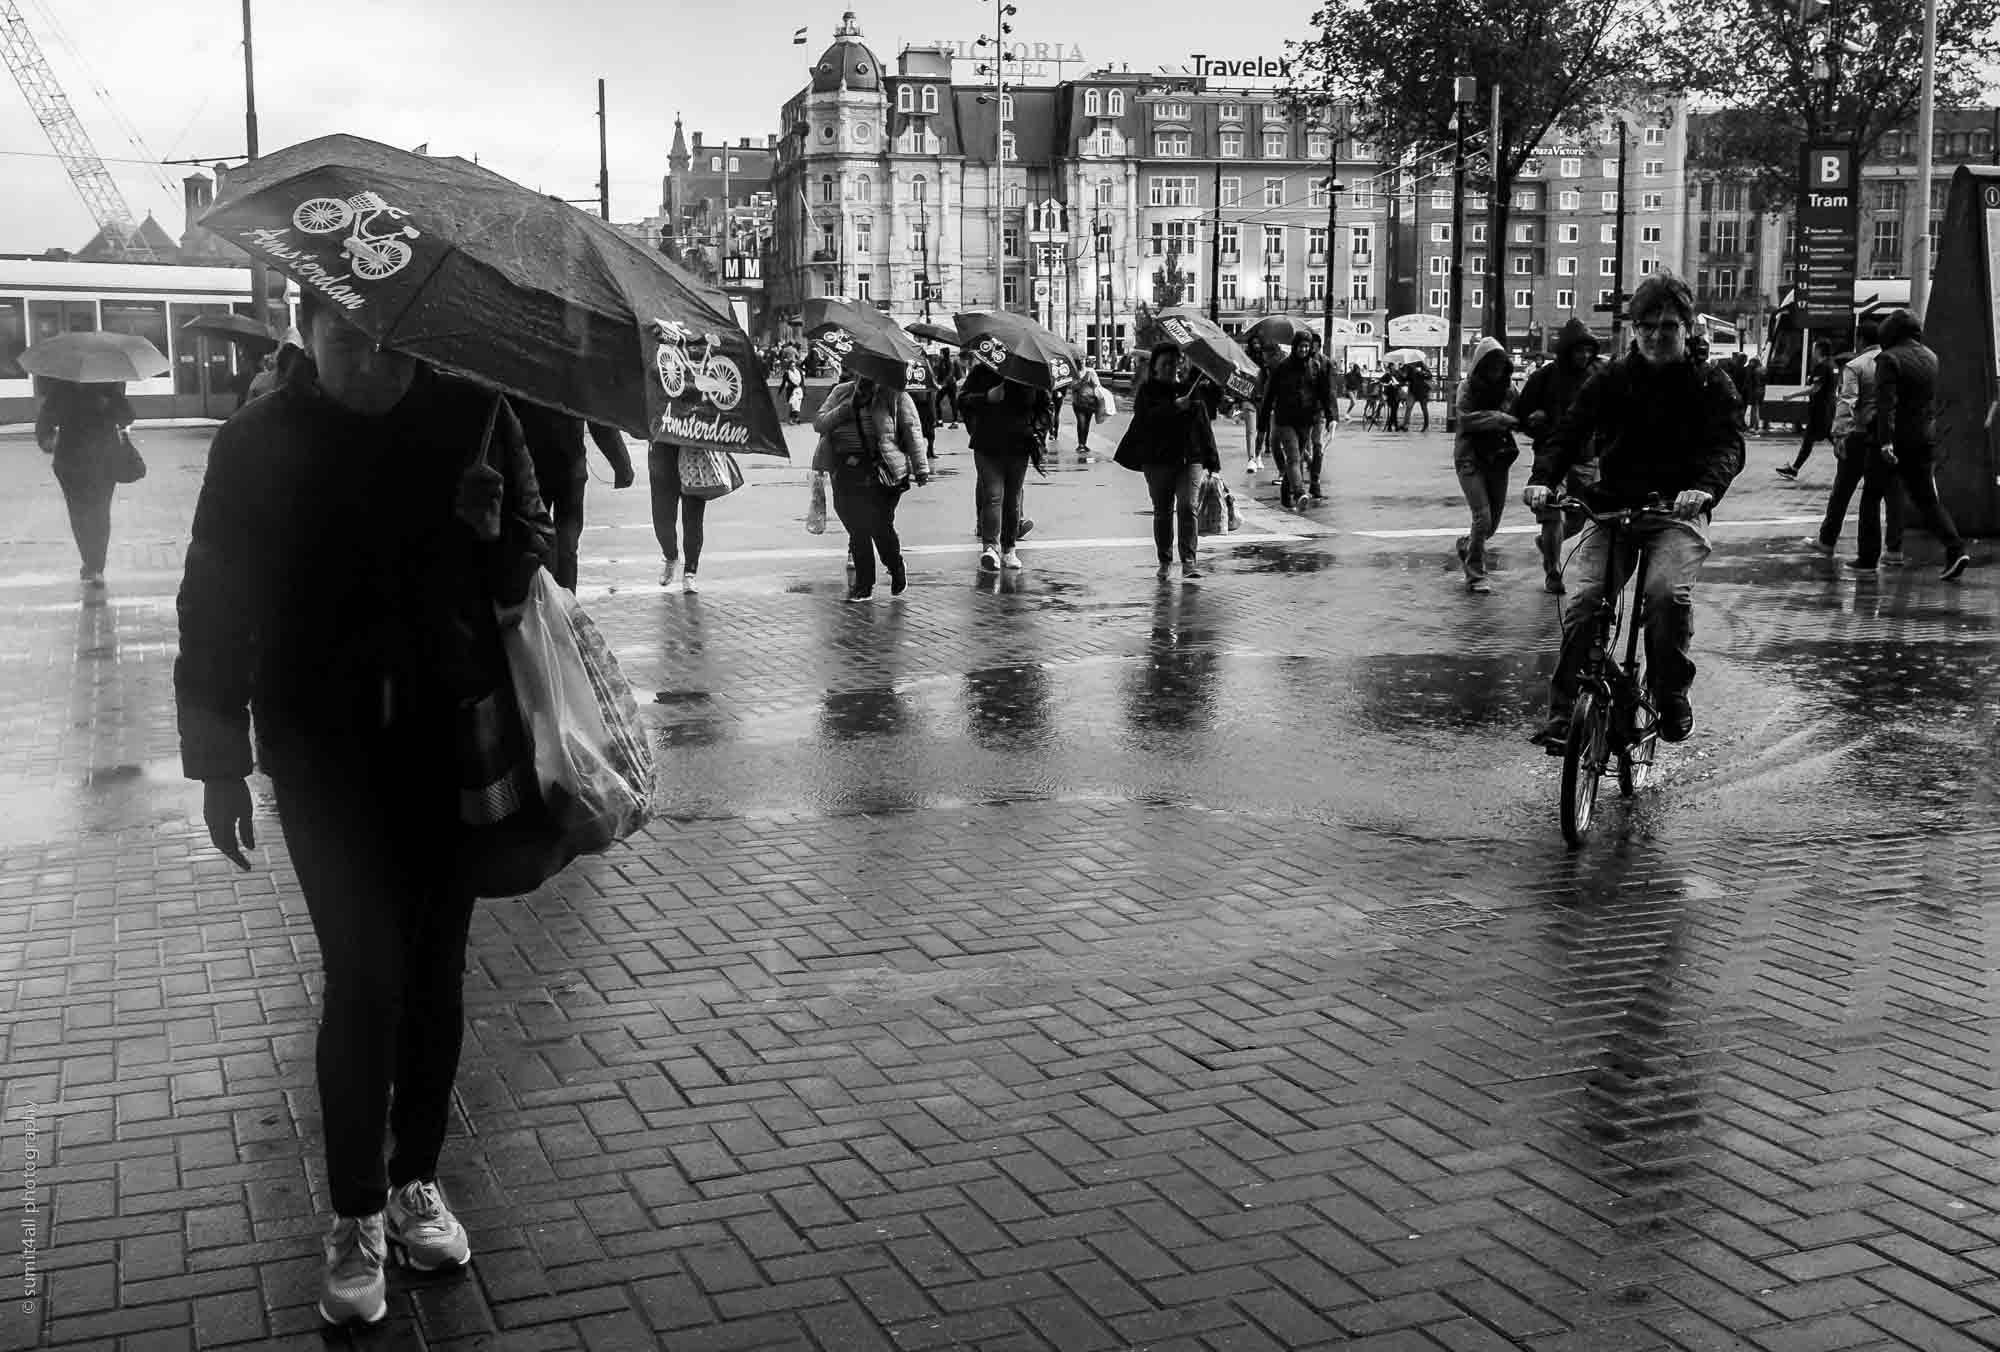 A Sudden Rainshower has People Running for Cover in Amsterdam